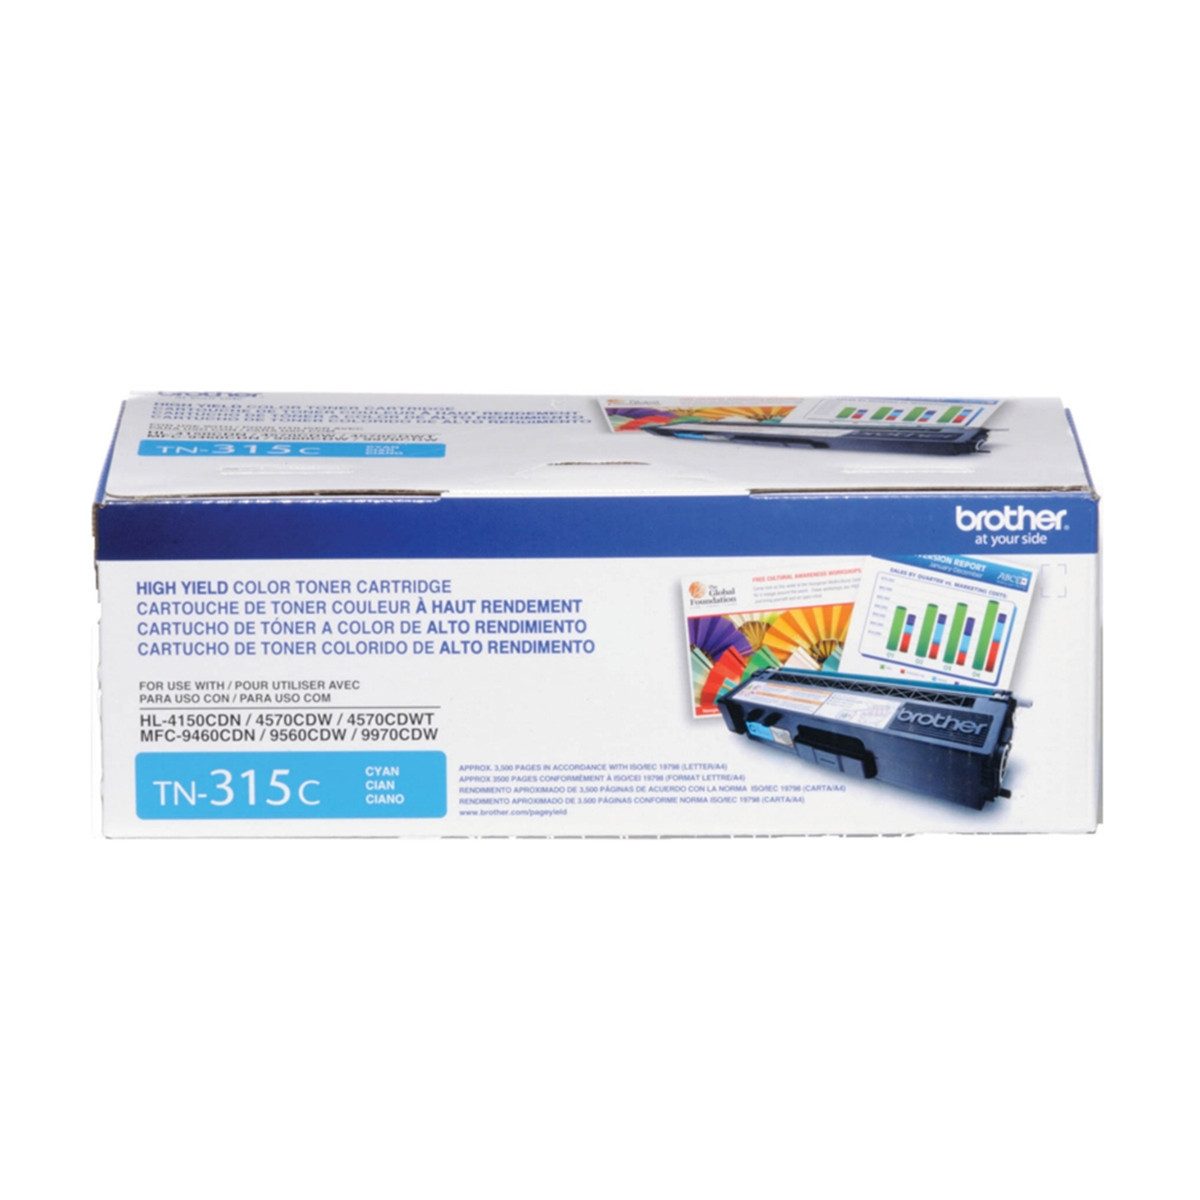 Toner Brother TN315 TN315C Ciano | HL4570 HL4150 HL4140 MFC9560 MFC9460 MFC9970 | Original 3.5k